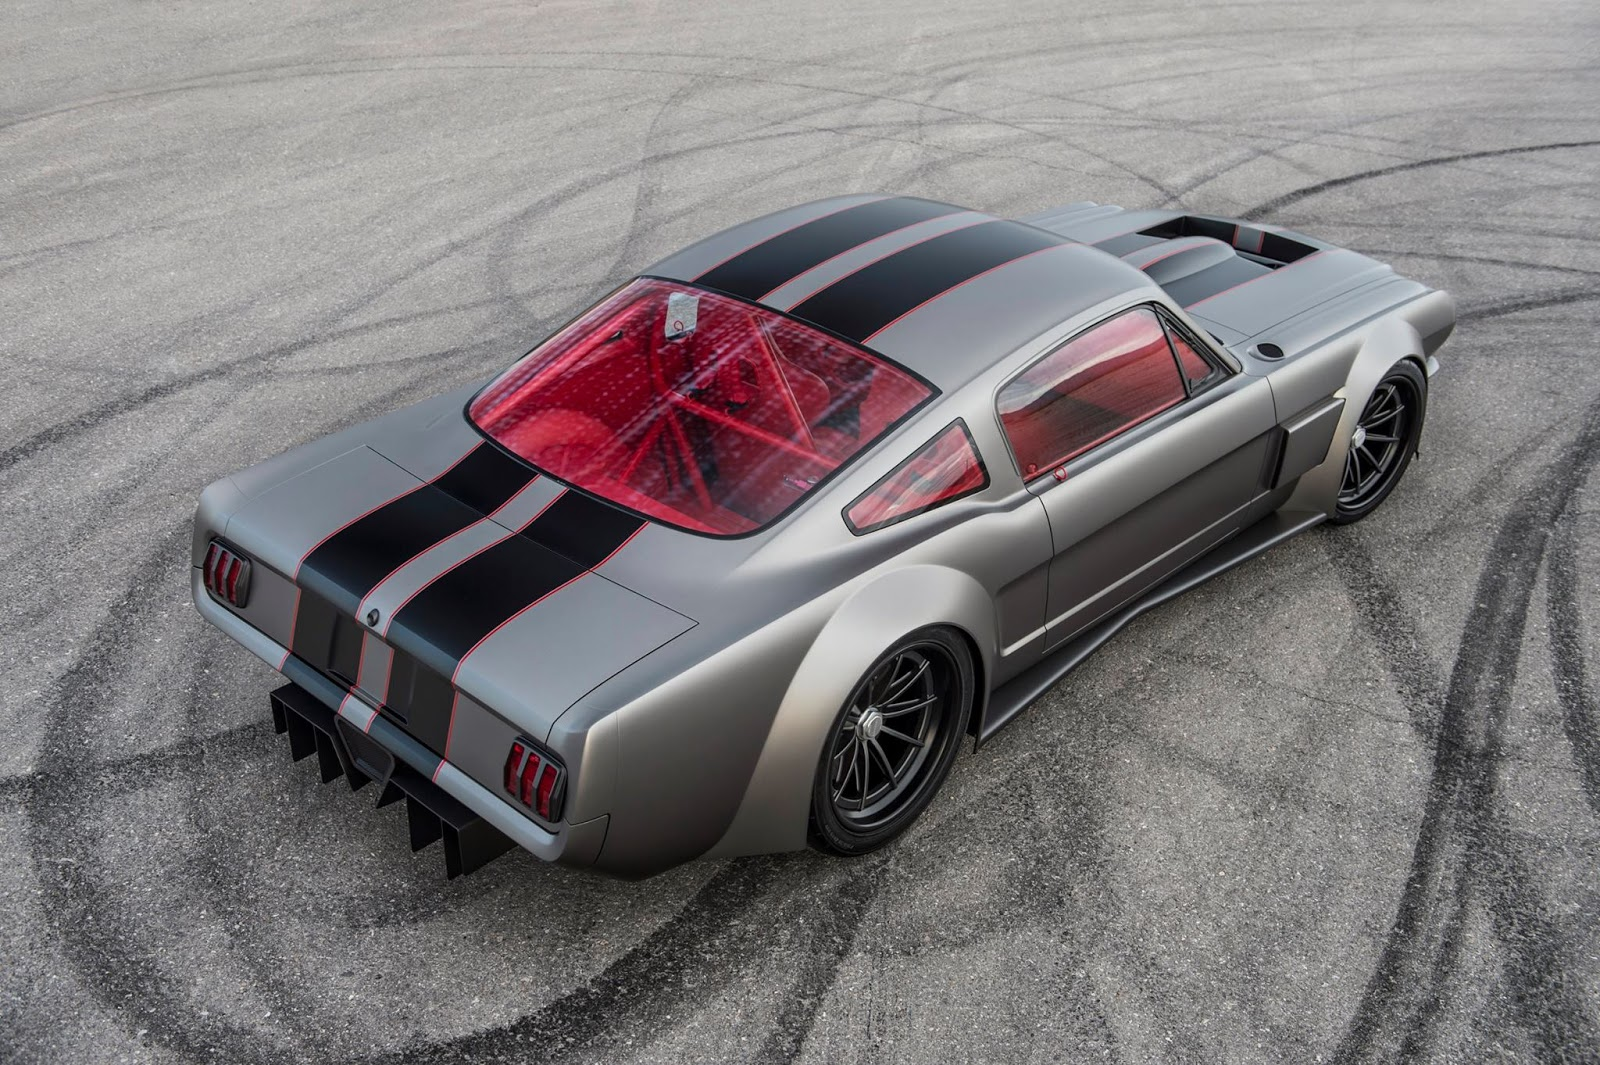 Twin-Turbo Mustang by Timeless Kustoms (6)